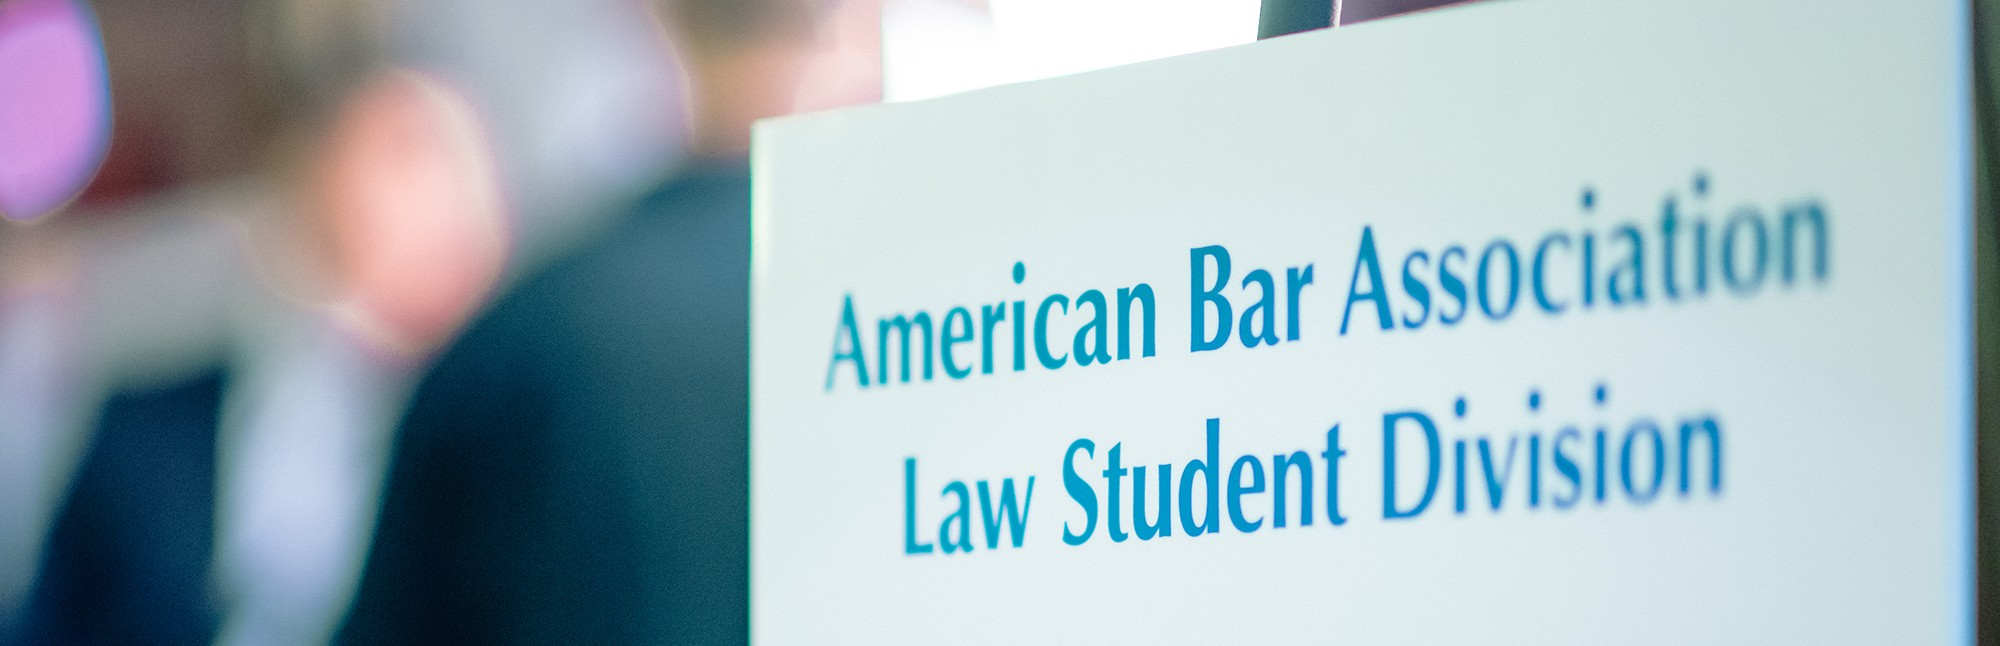 ABA Law Student Division Sign